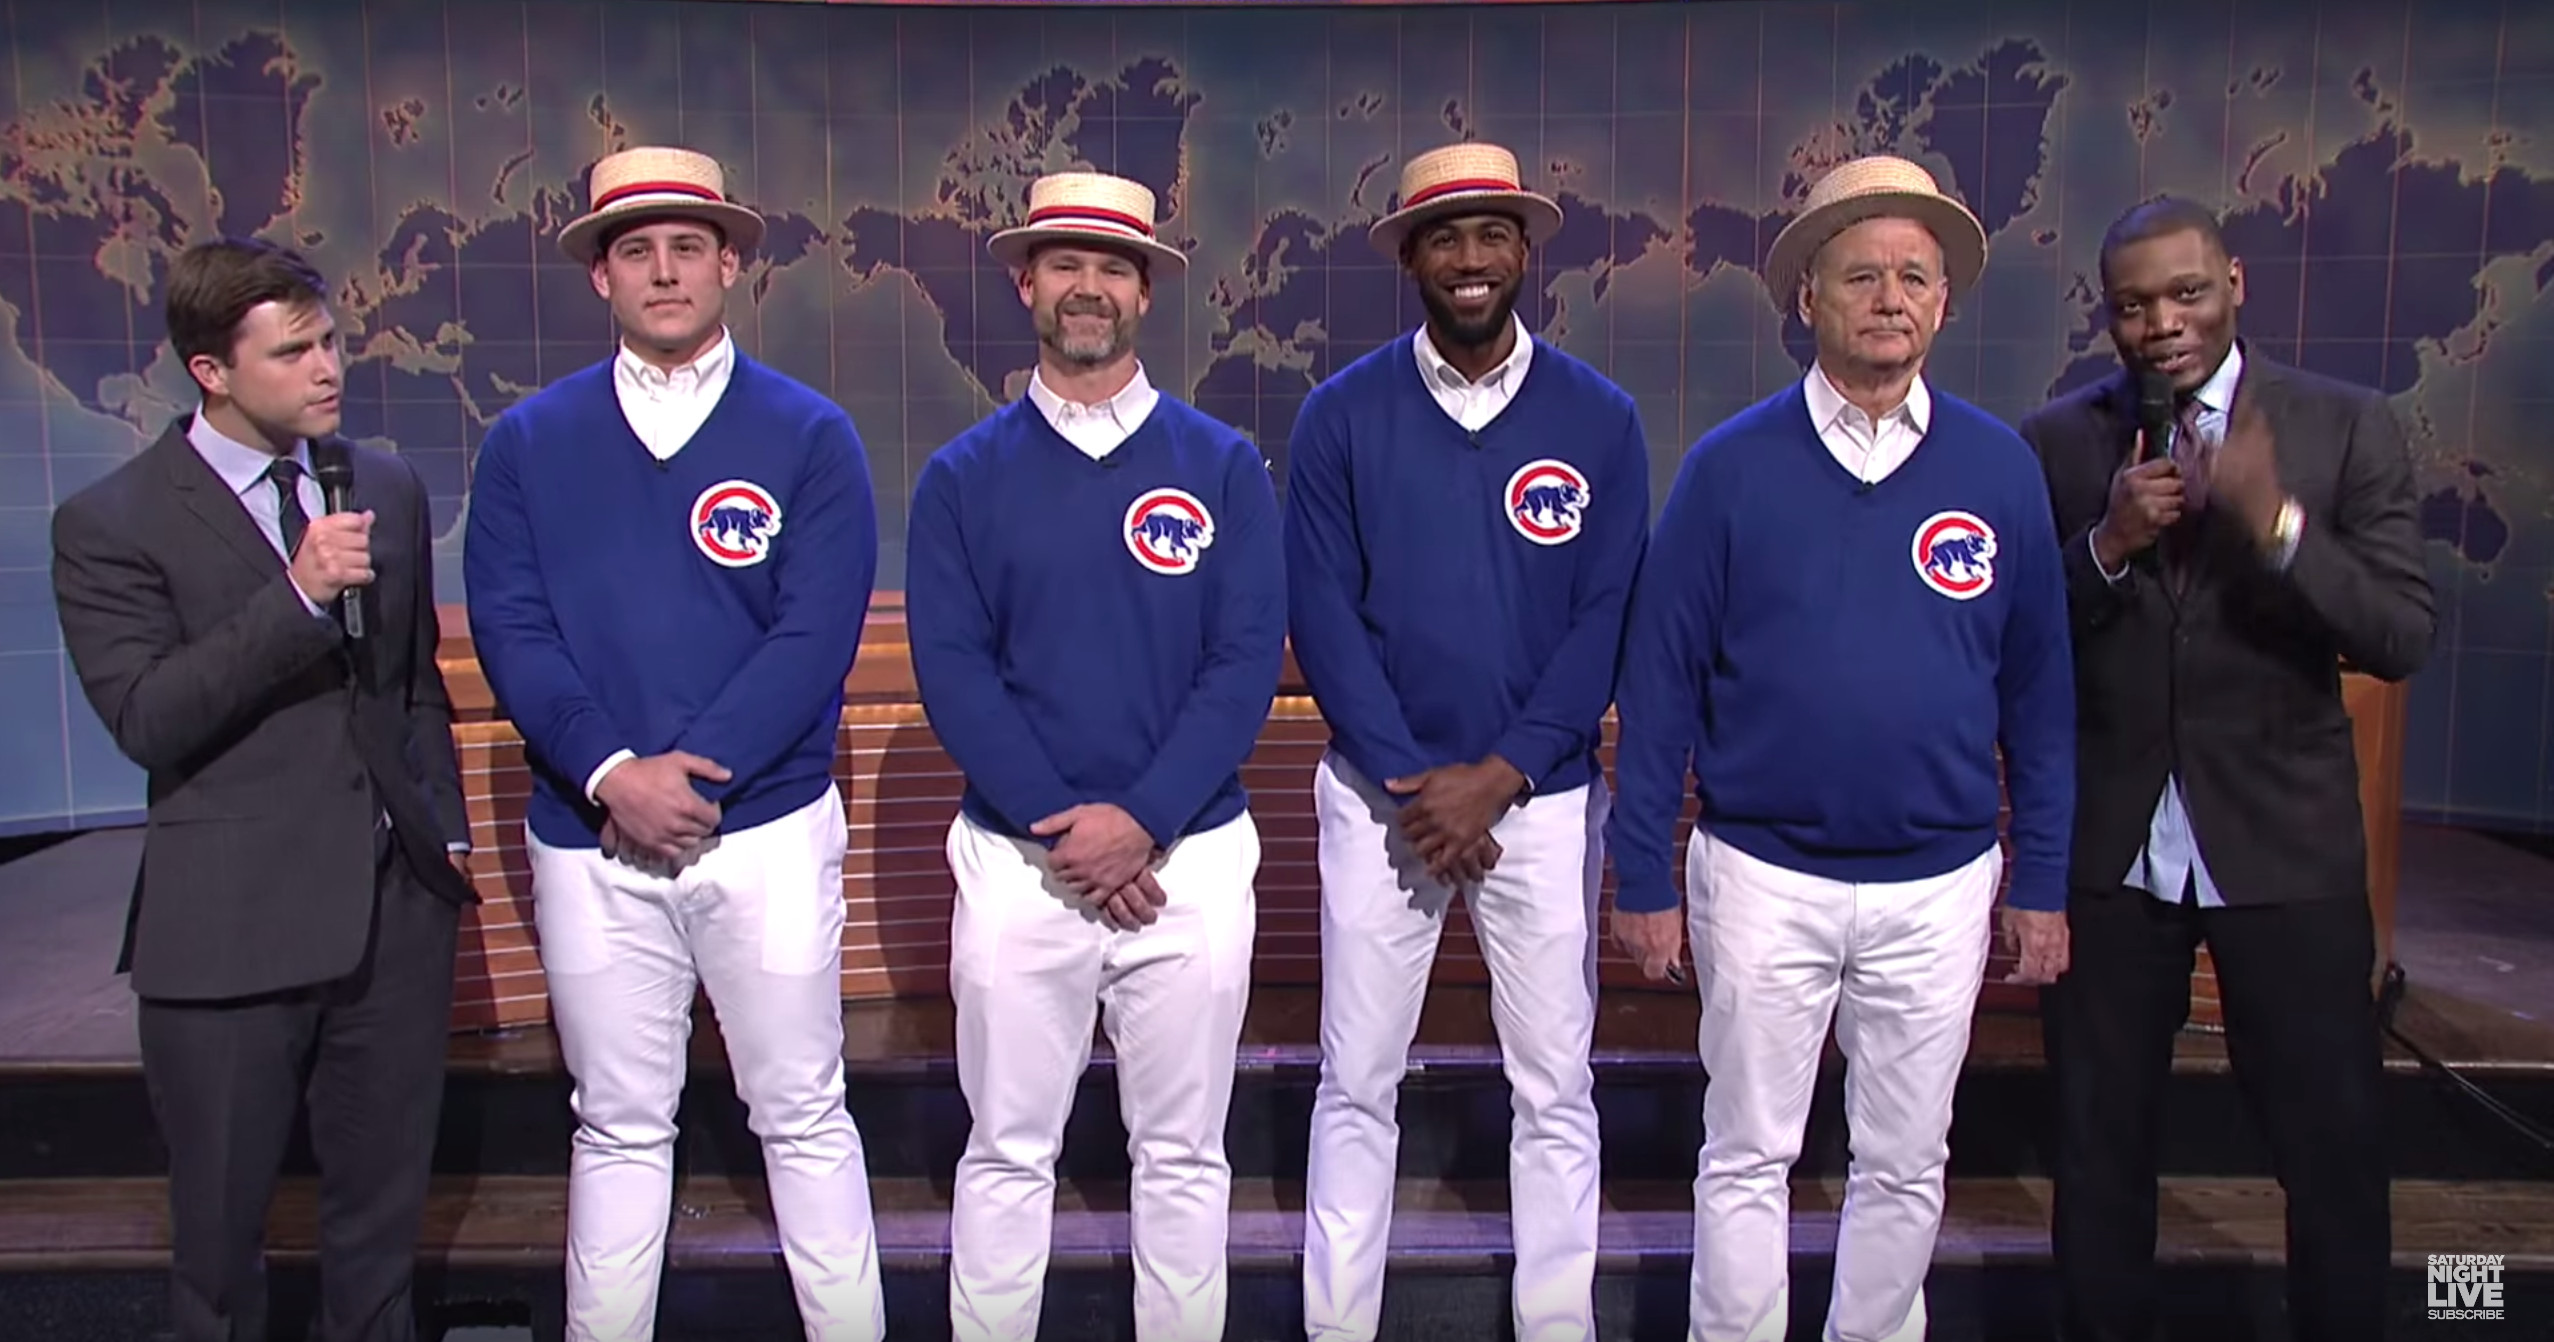 Bill Murray Sings 'Go Cubs Go' With Baseball Team's Star Players on 'SNL'